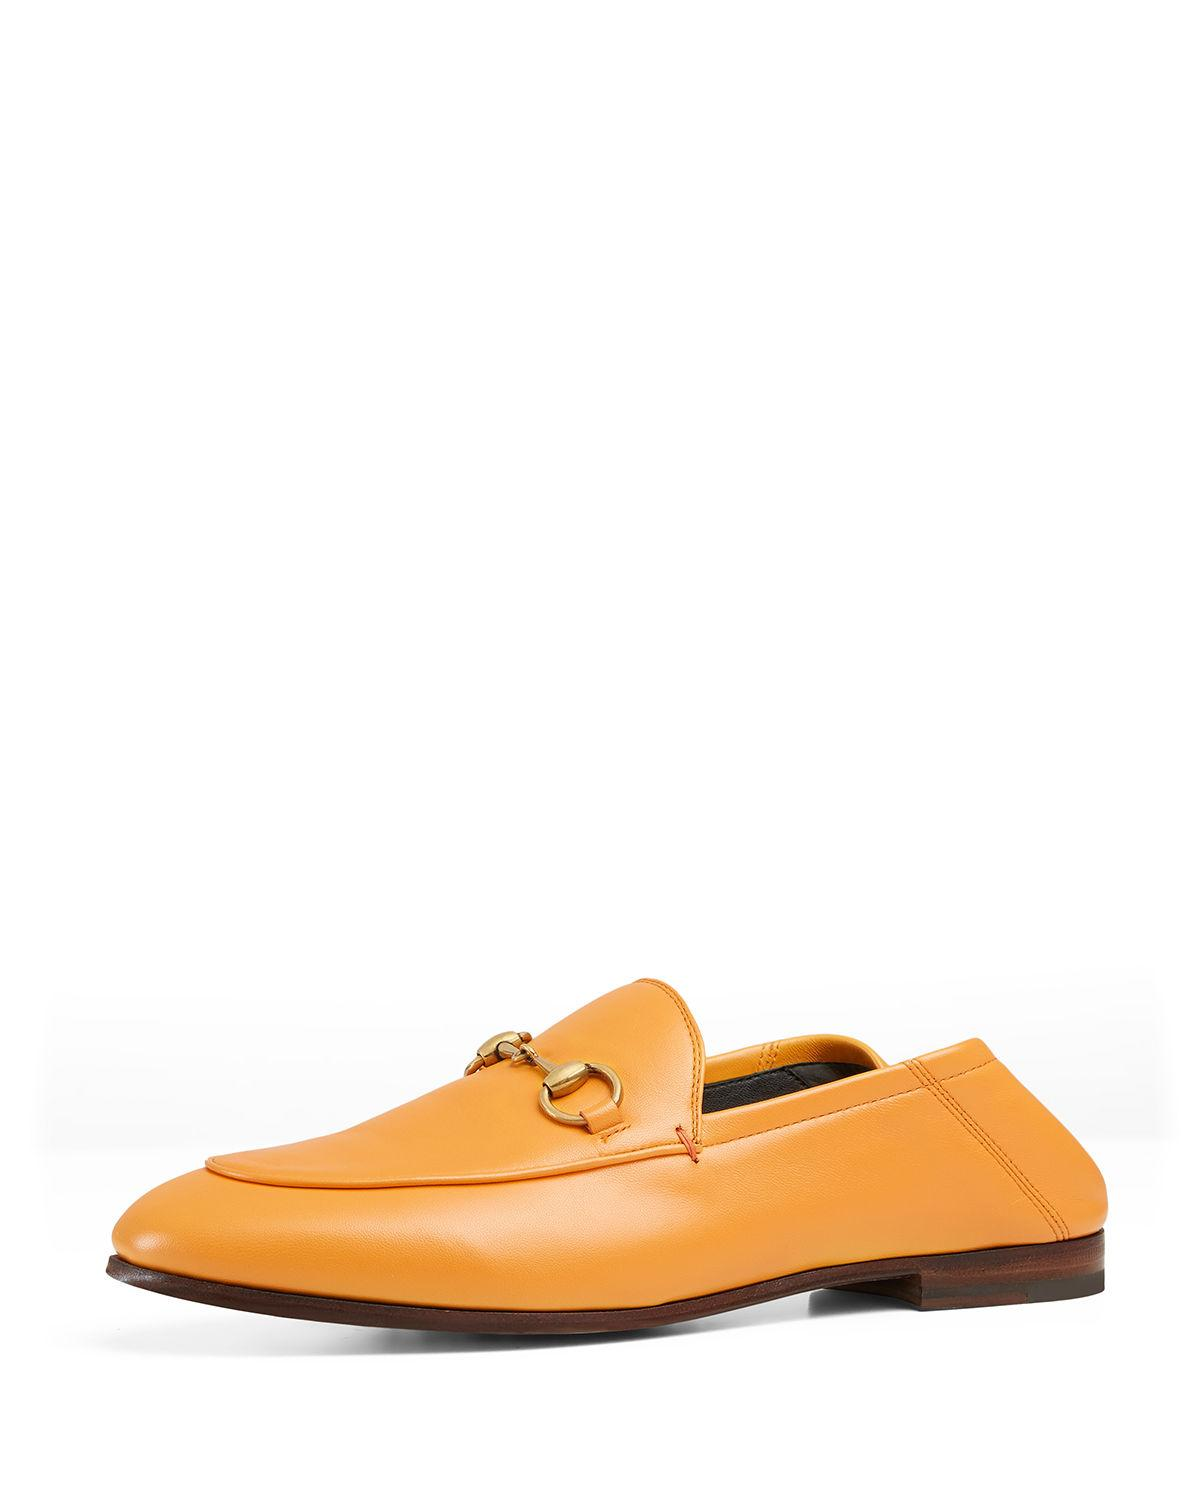 6b3bf22d8a90 Gucci Yellow Brixton Horsebit Loafers In Yellow   Orange